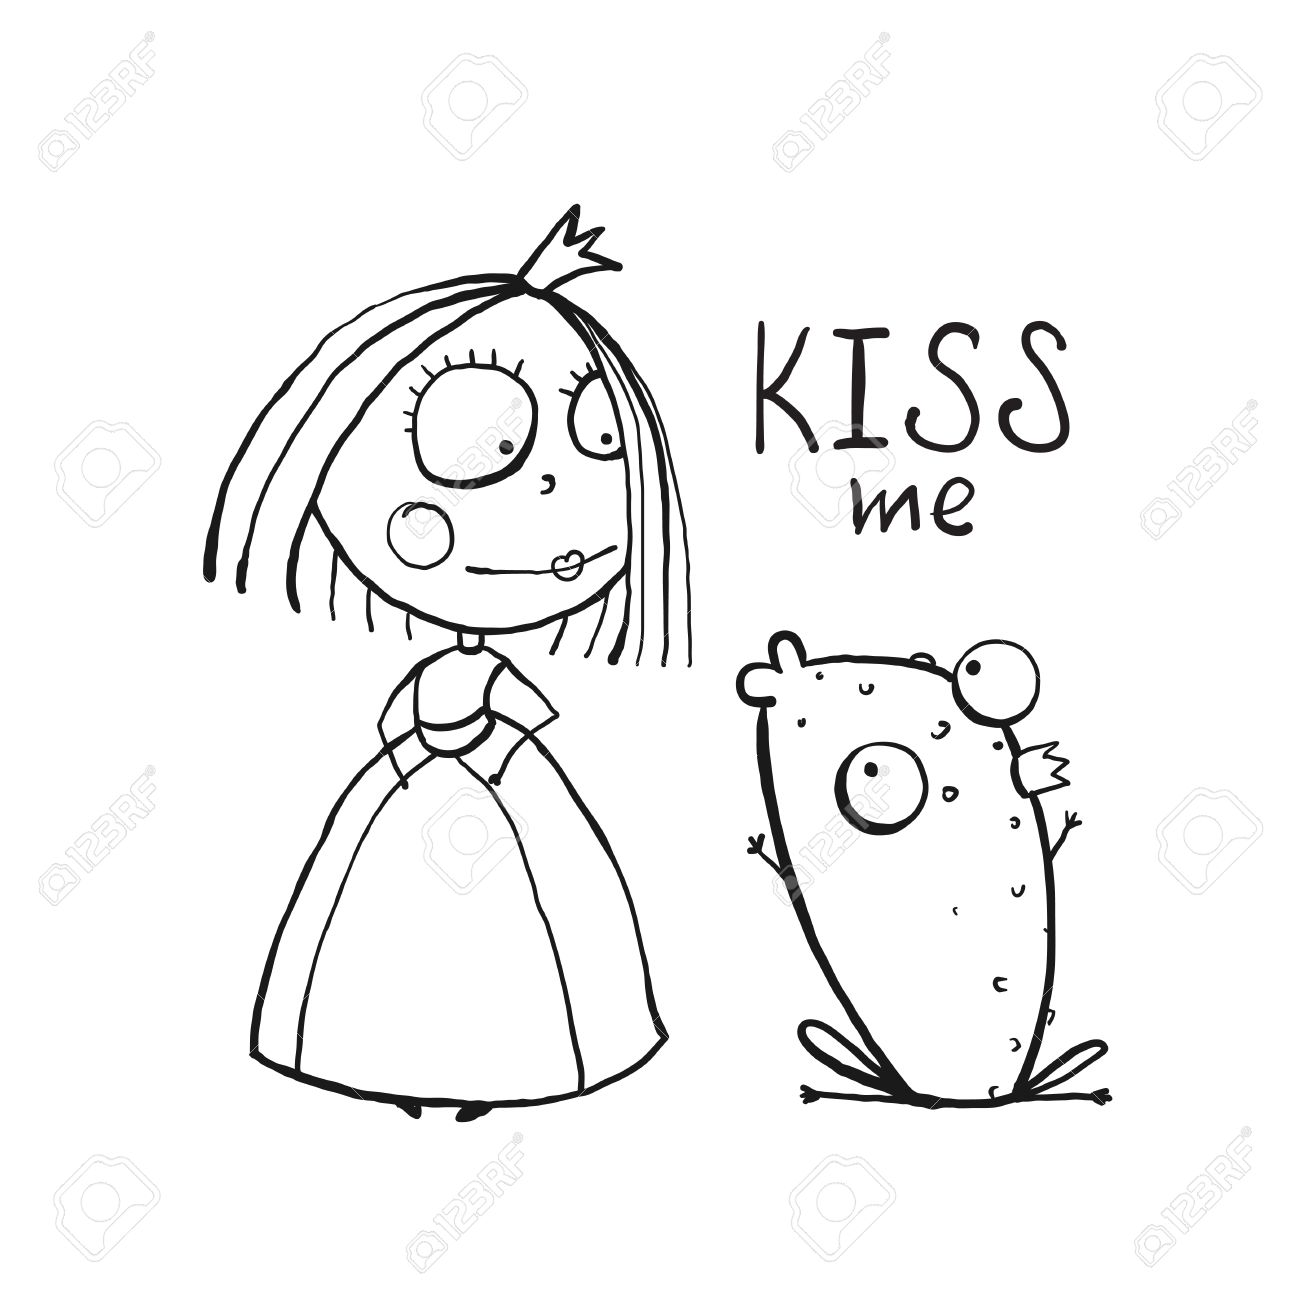 Princess story coloring pages - Baby Princess And Frog Asking For Kiss Coloring Page Kids Love Story Cute And Fun